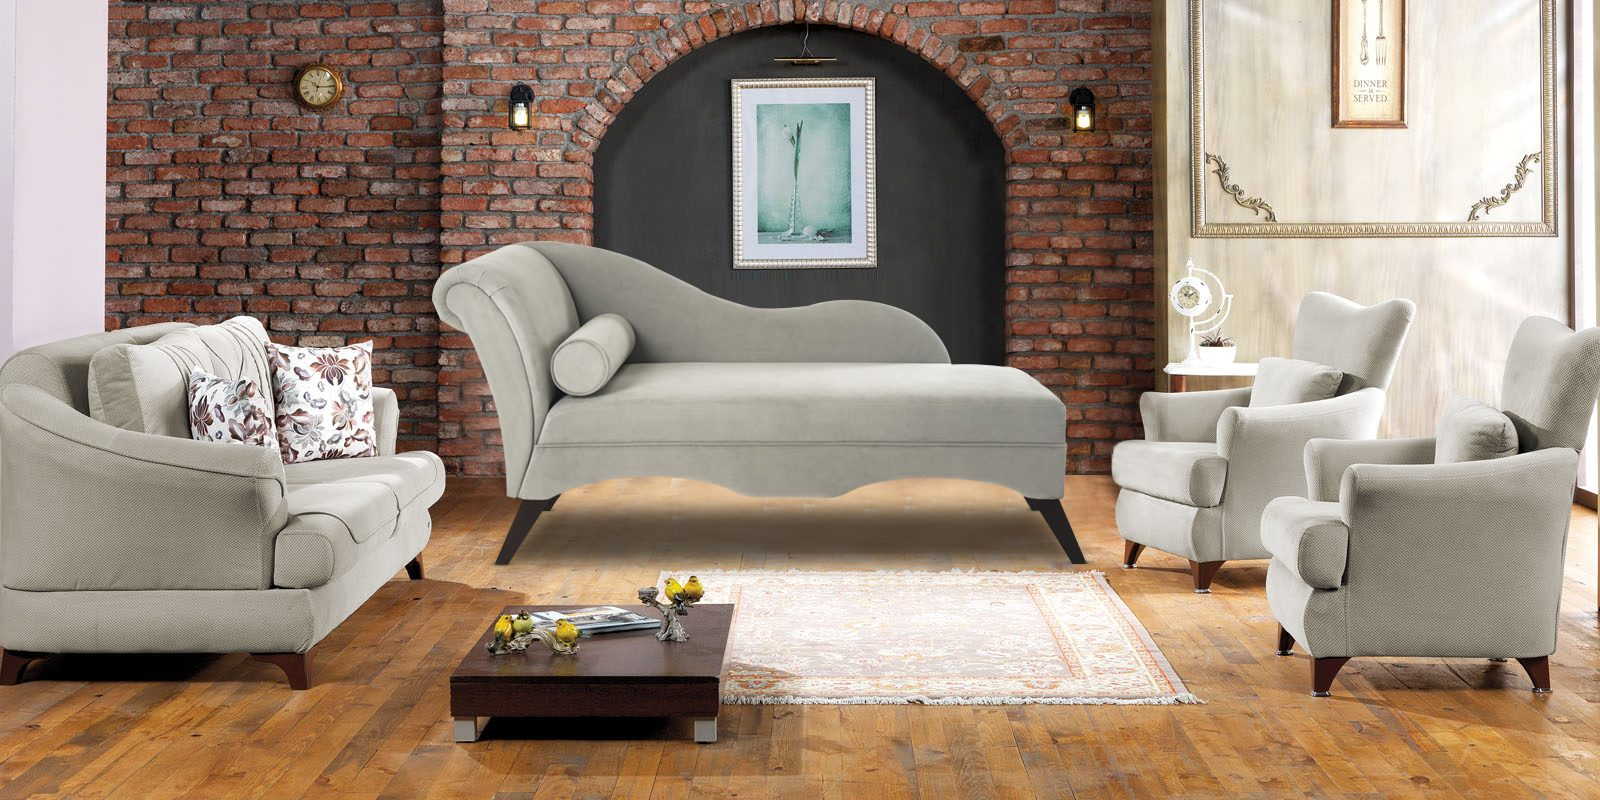 Modern Chaise Lounge Couch Grey Colour